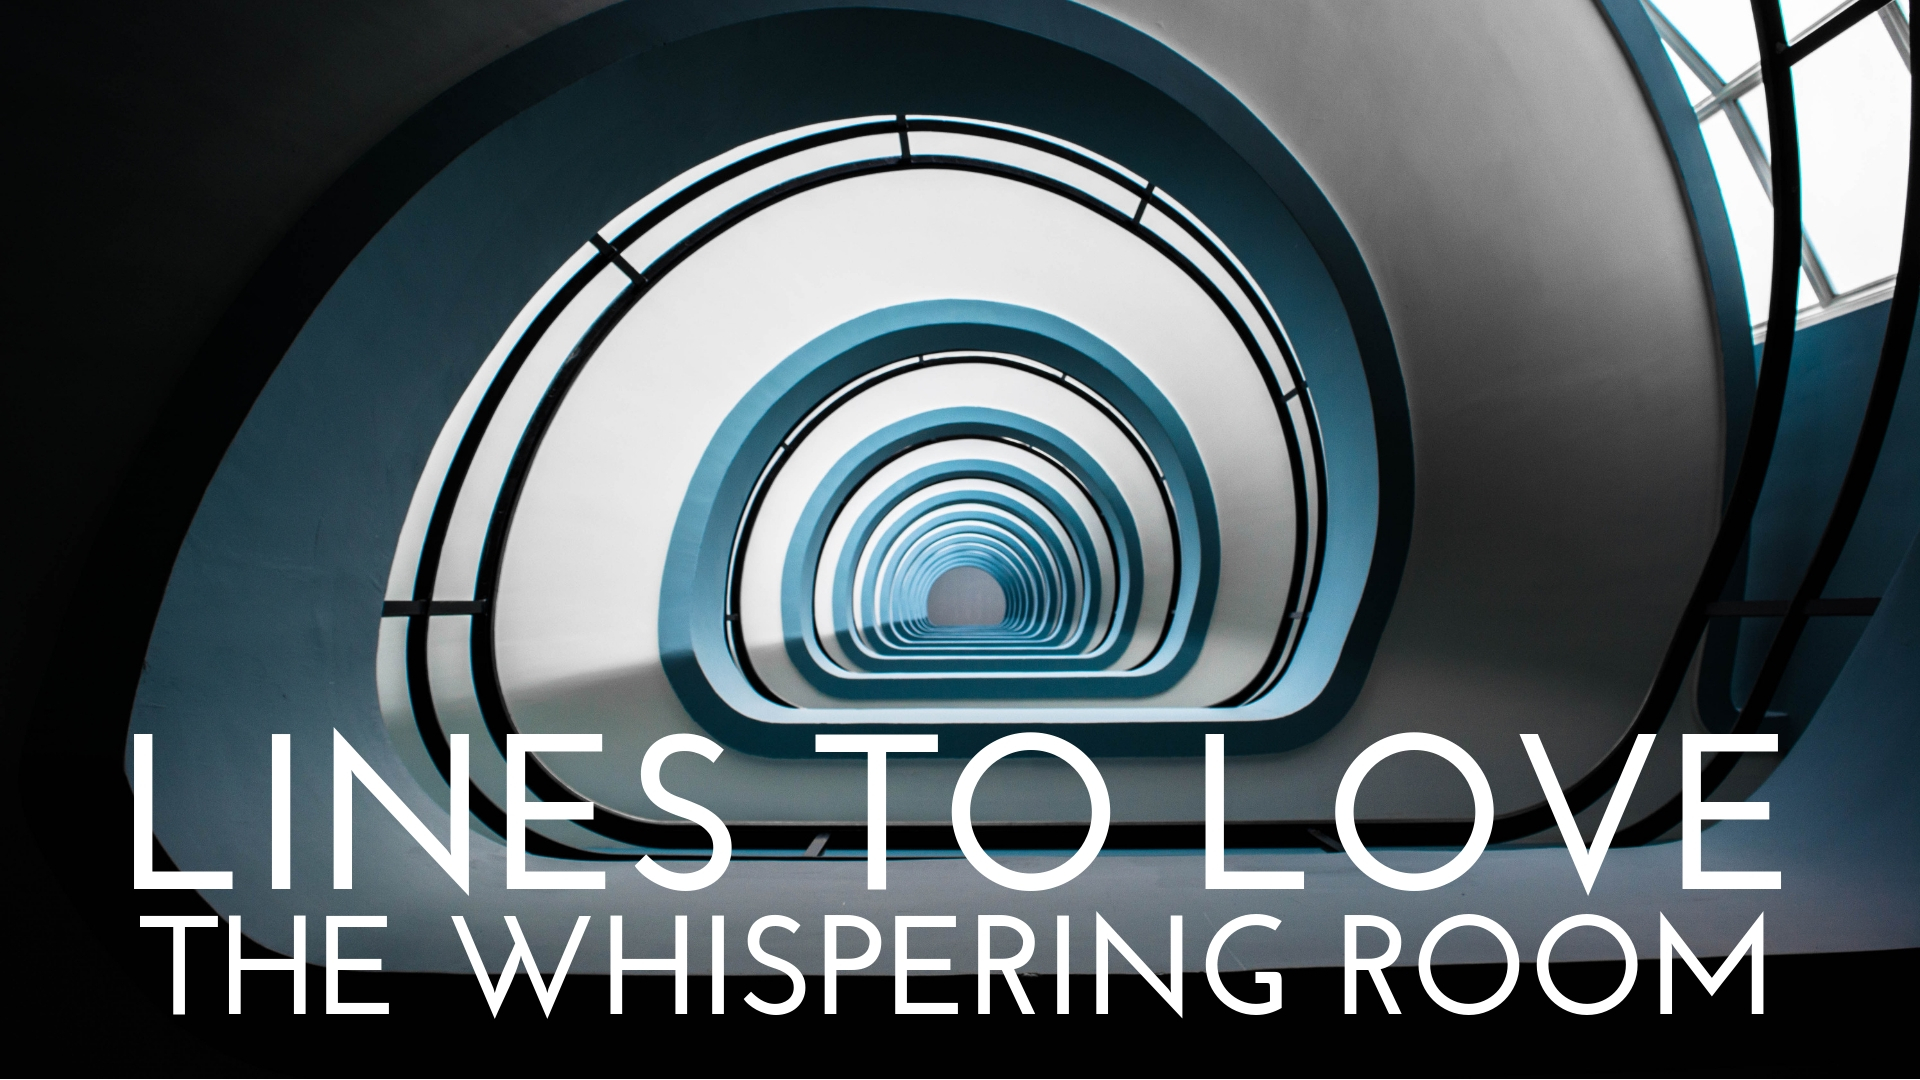 banner-lines-to-love-the-whispering-room-05.jpg